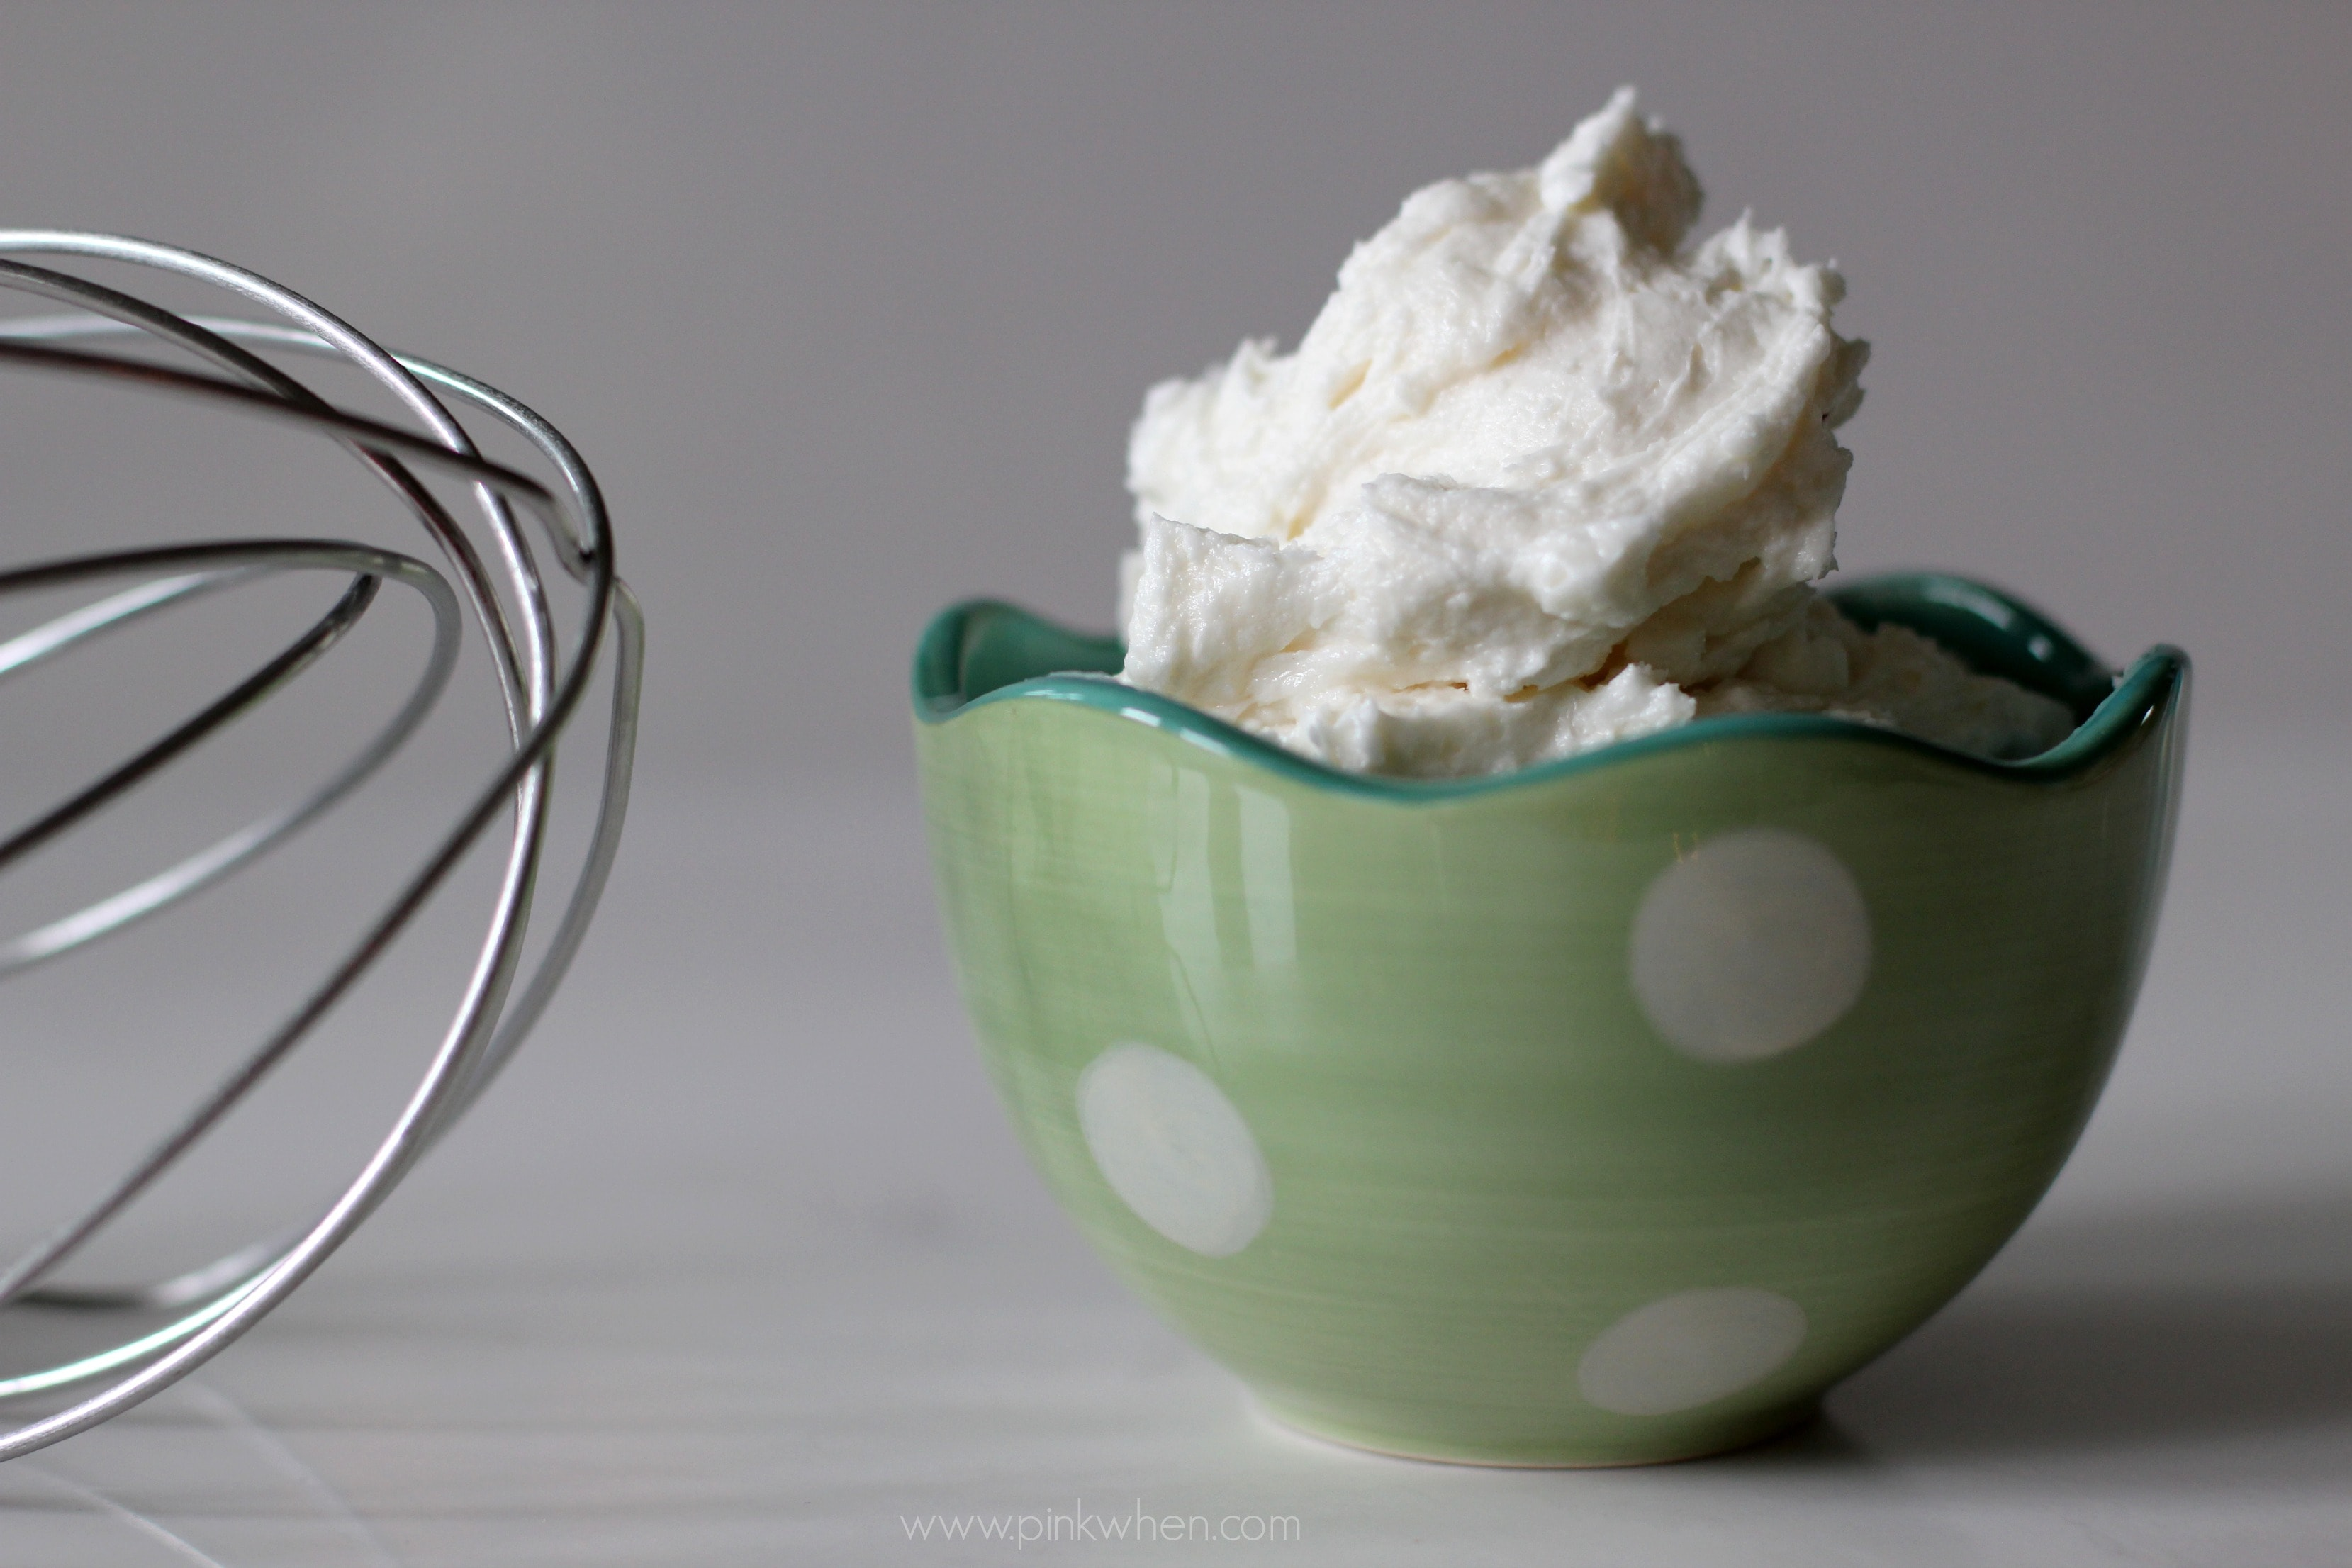 Delicious and Fluffy Vanilla Buttercream Frosting recipe via PinkWhen.com